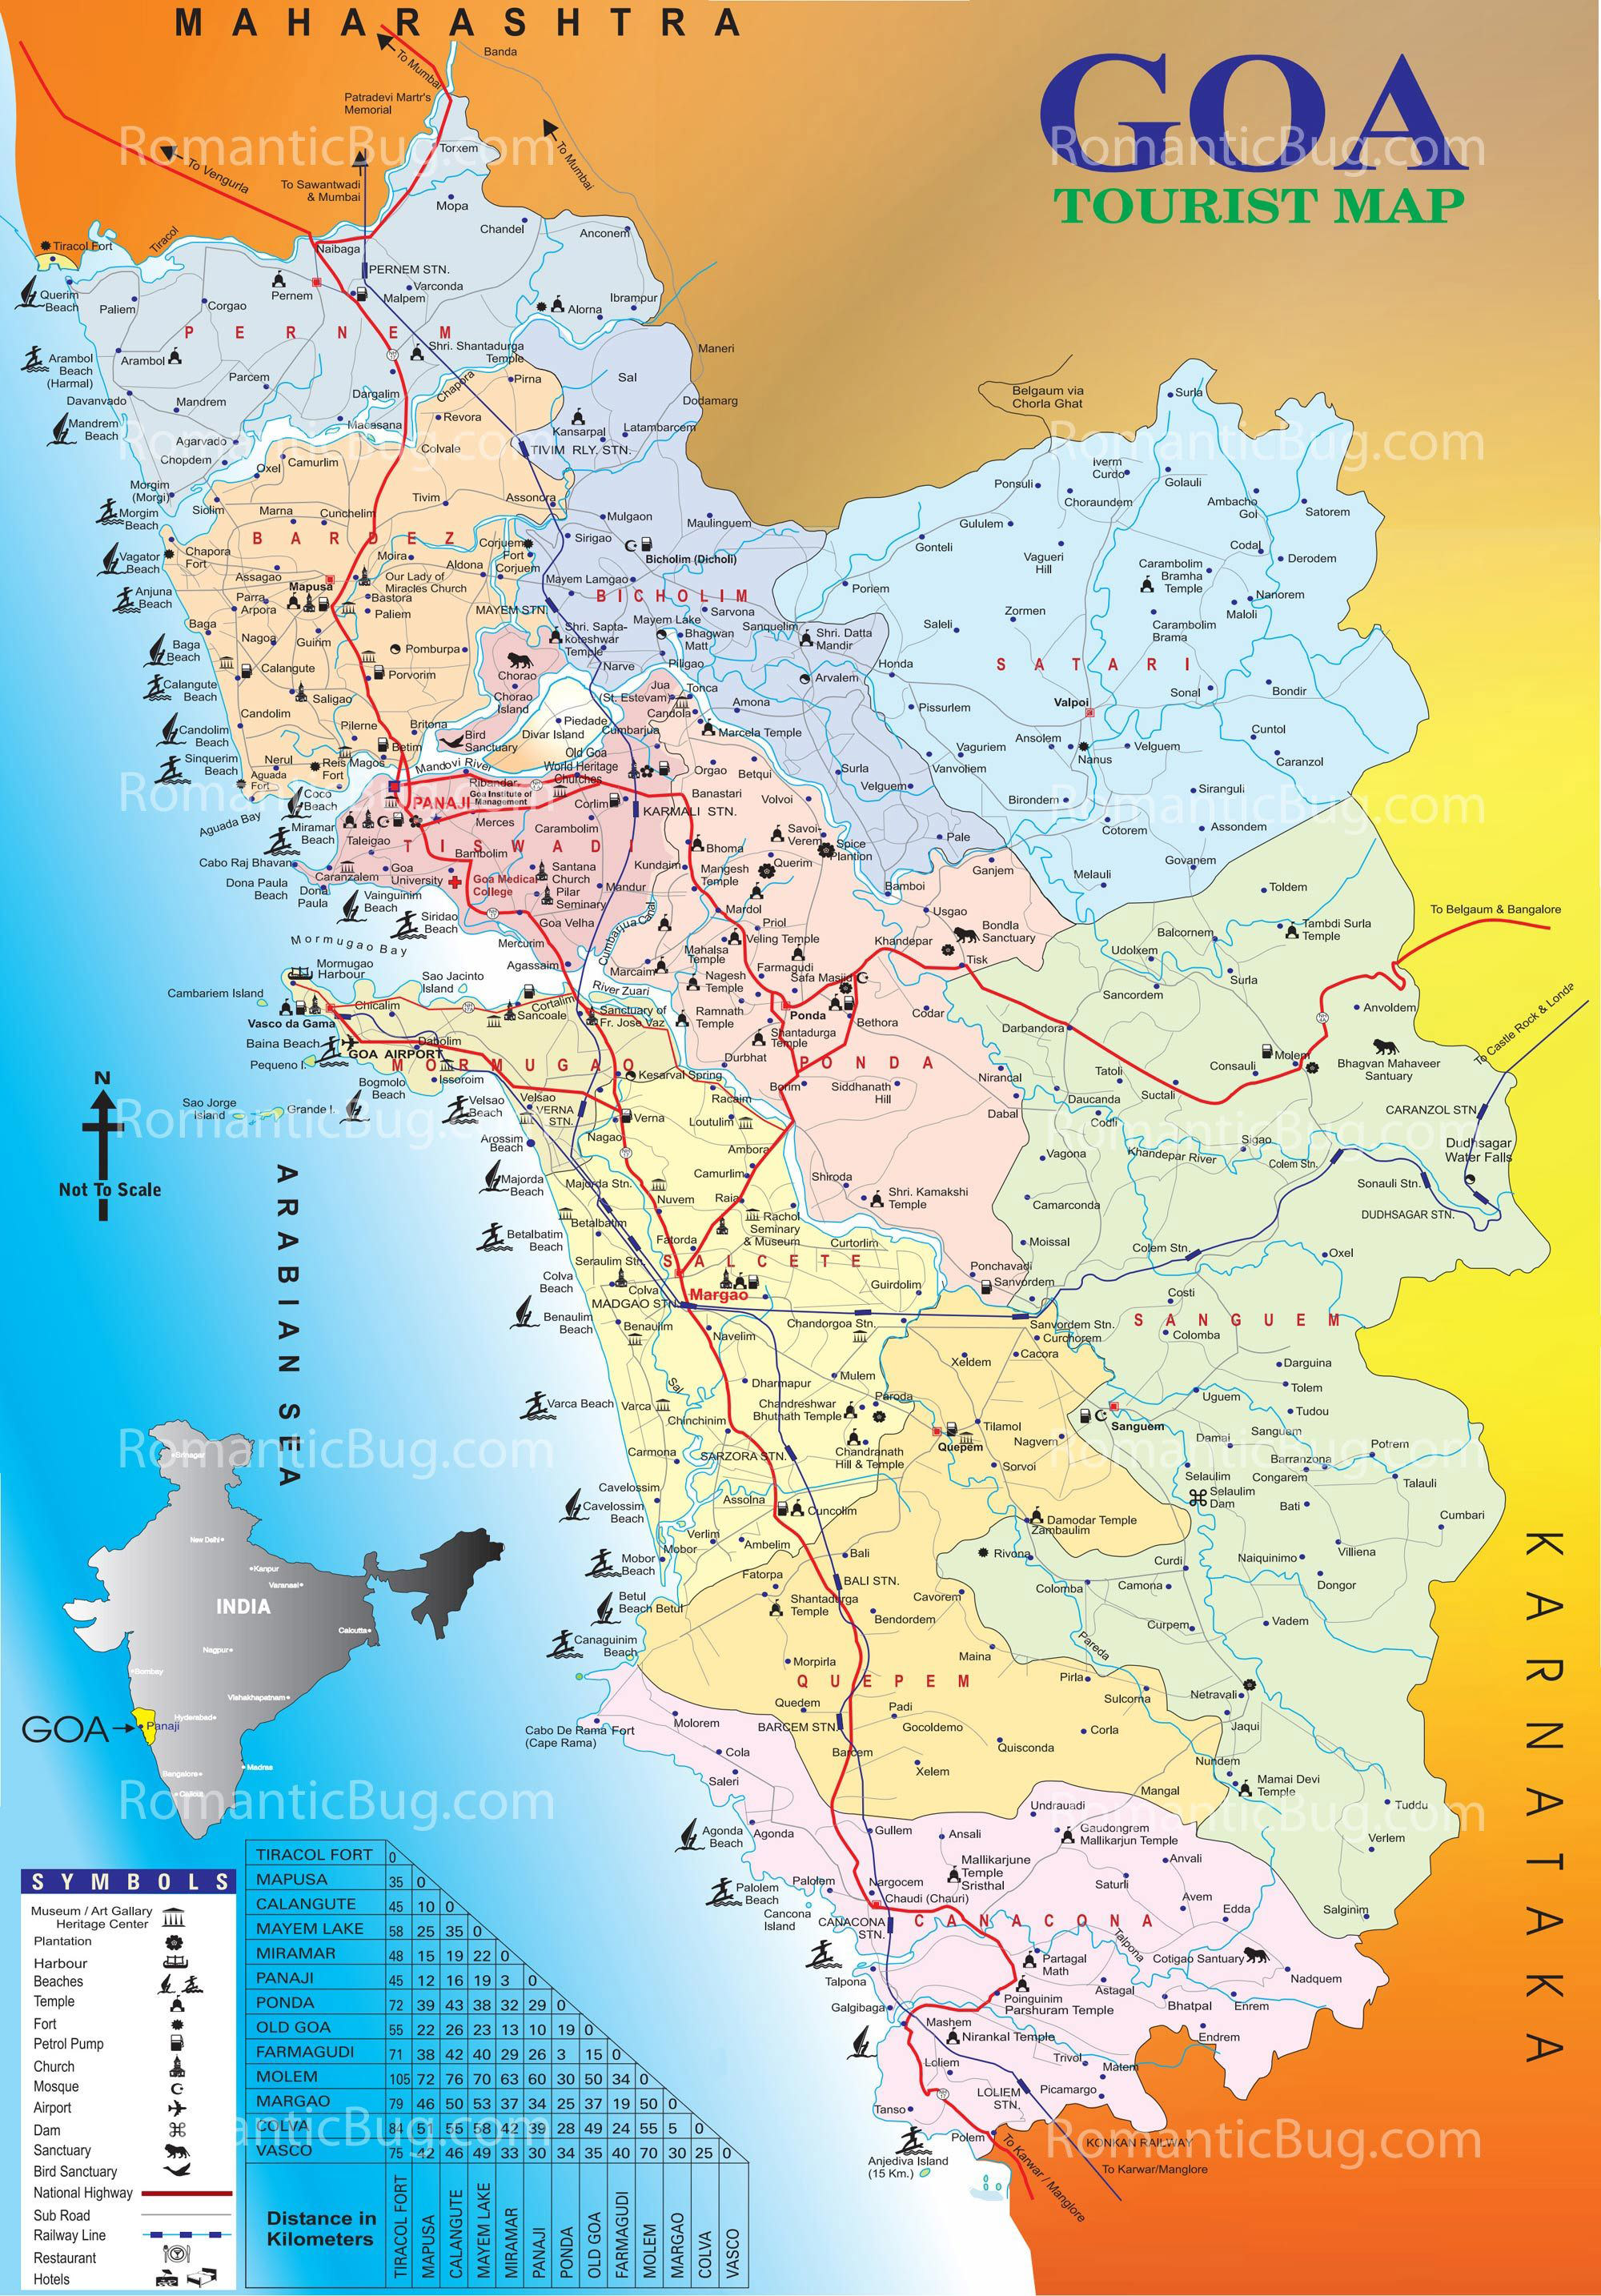 download free tourist map of goa  complete goa tourism map - complete tourist map of goa